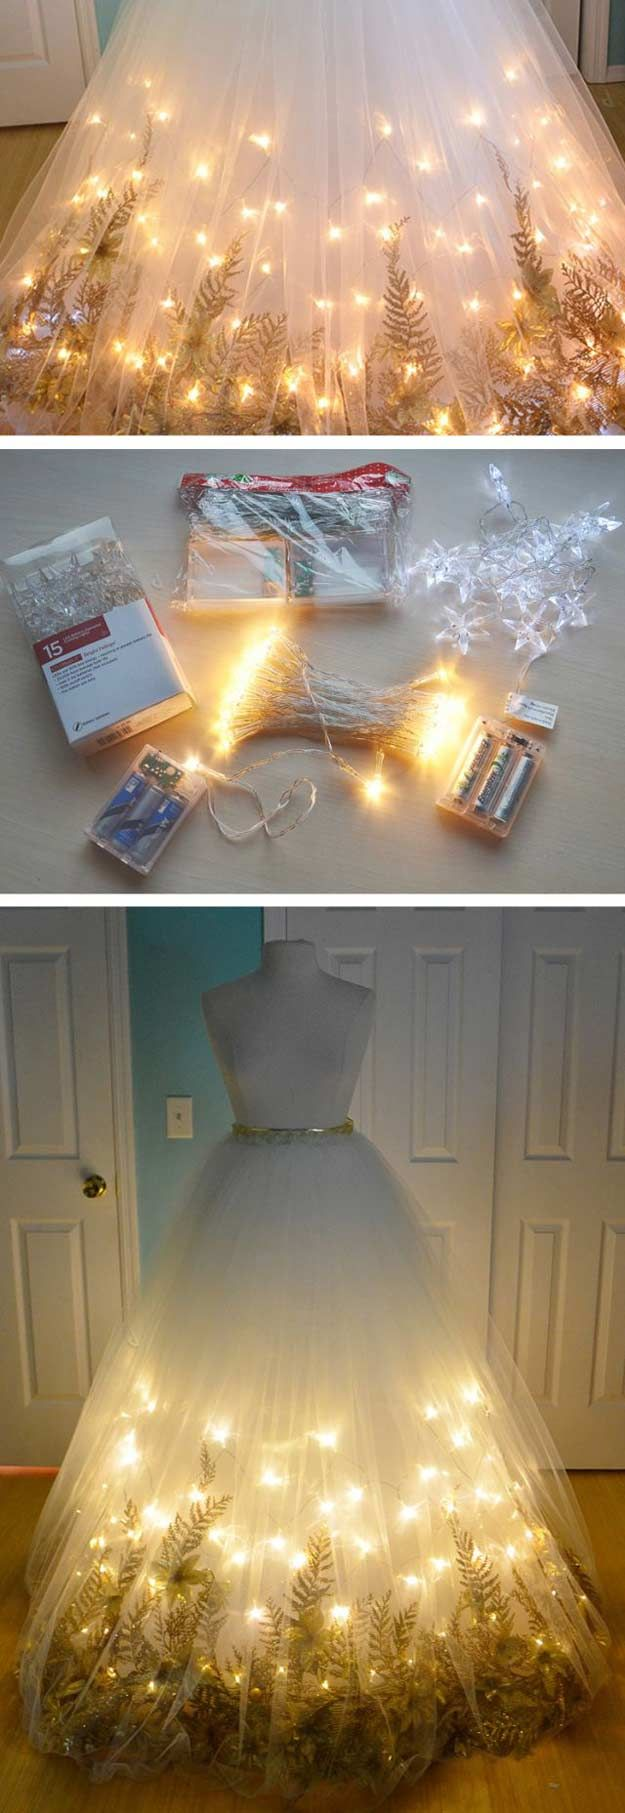 Check out 13 Clever DIY Halloween Costumes for Adults at http://diyready.com/13-clever-diy-halloween-costumes-for-adults/